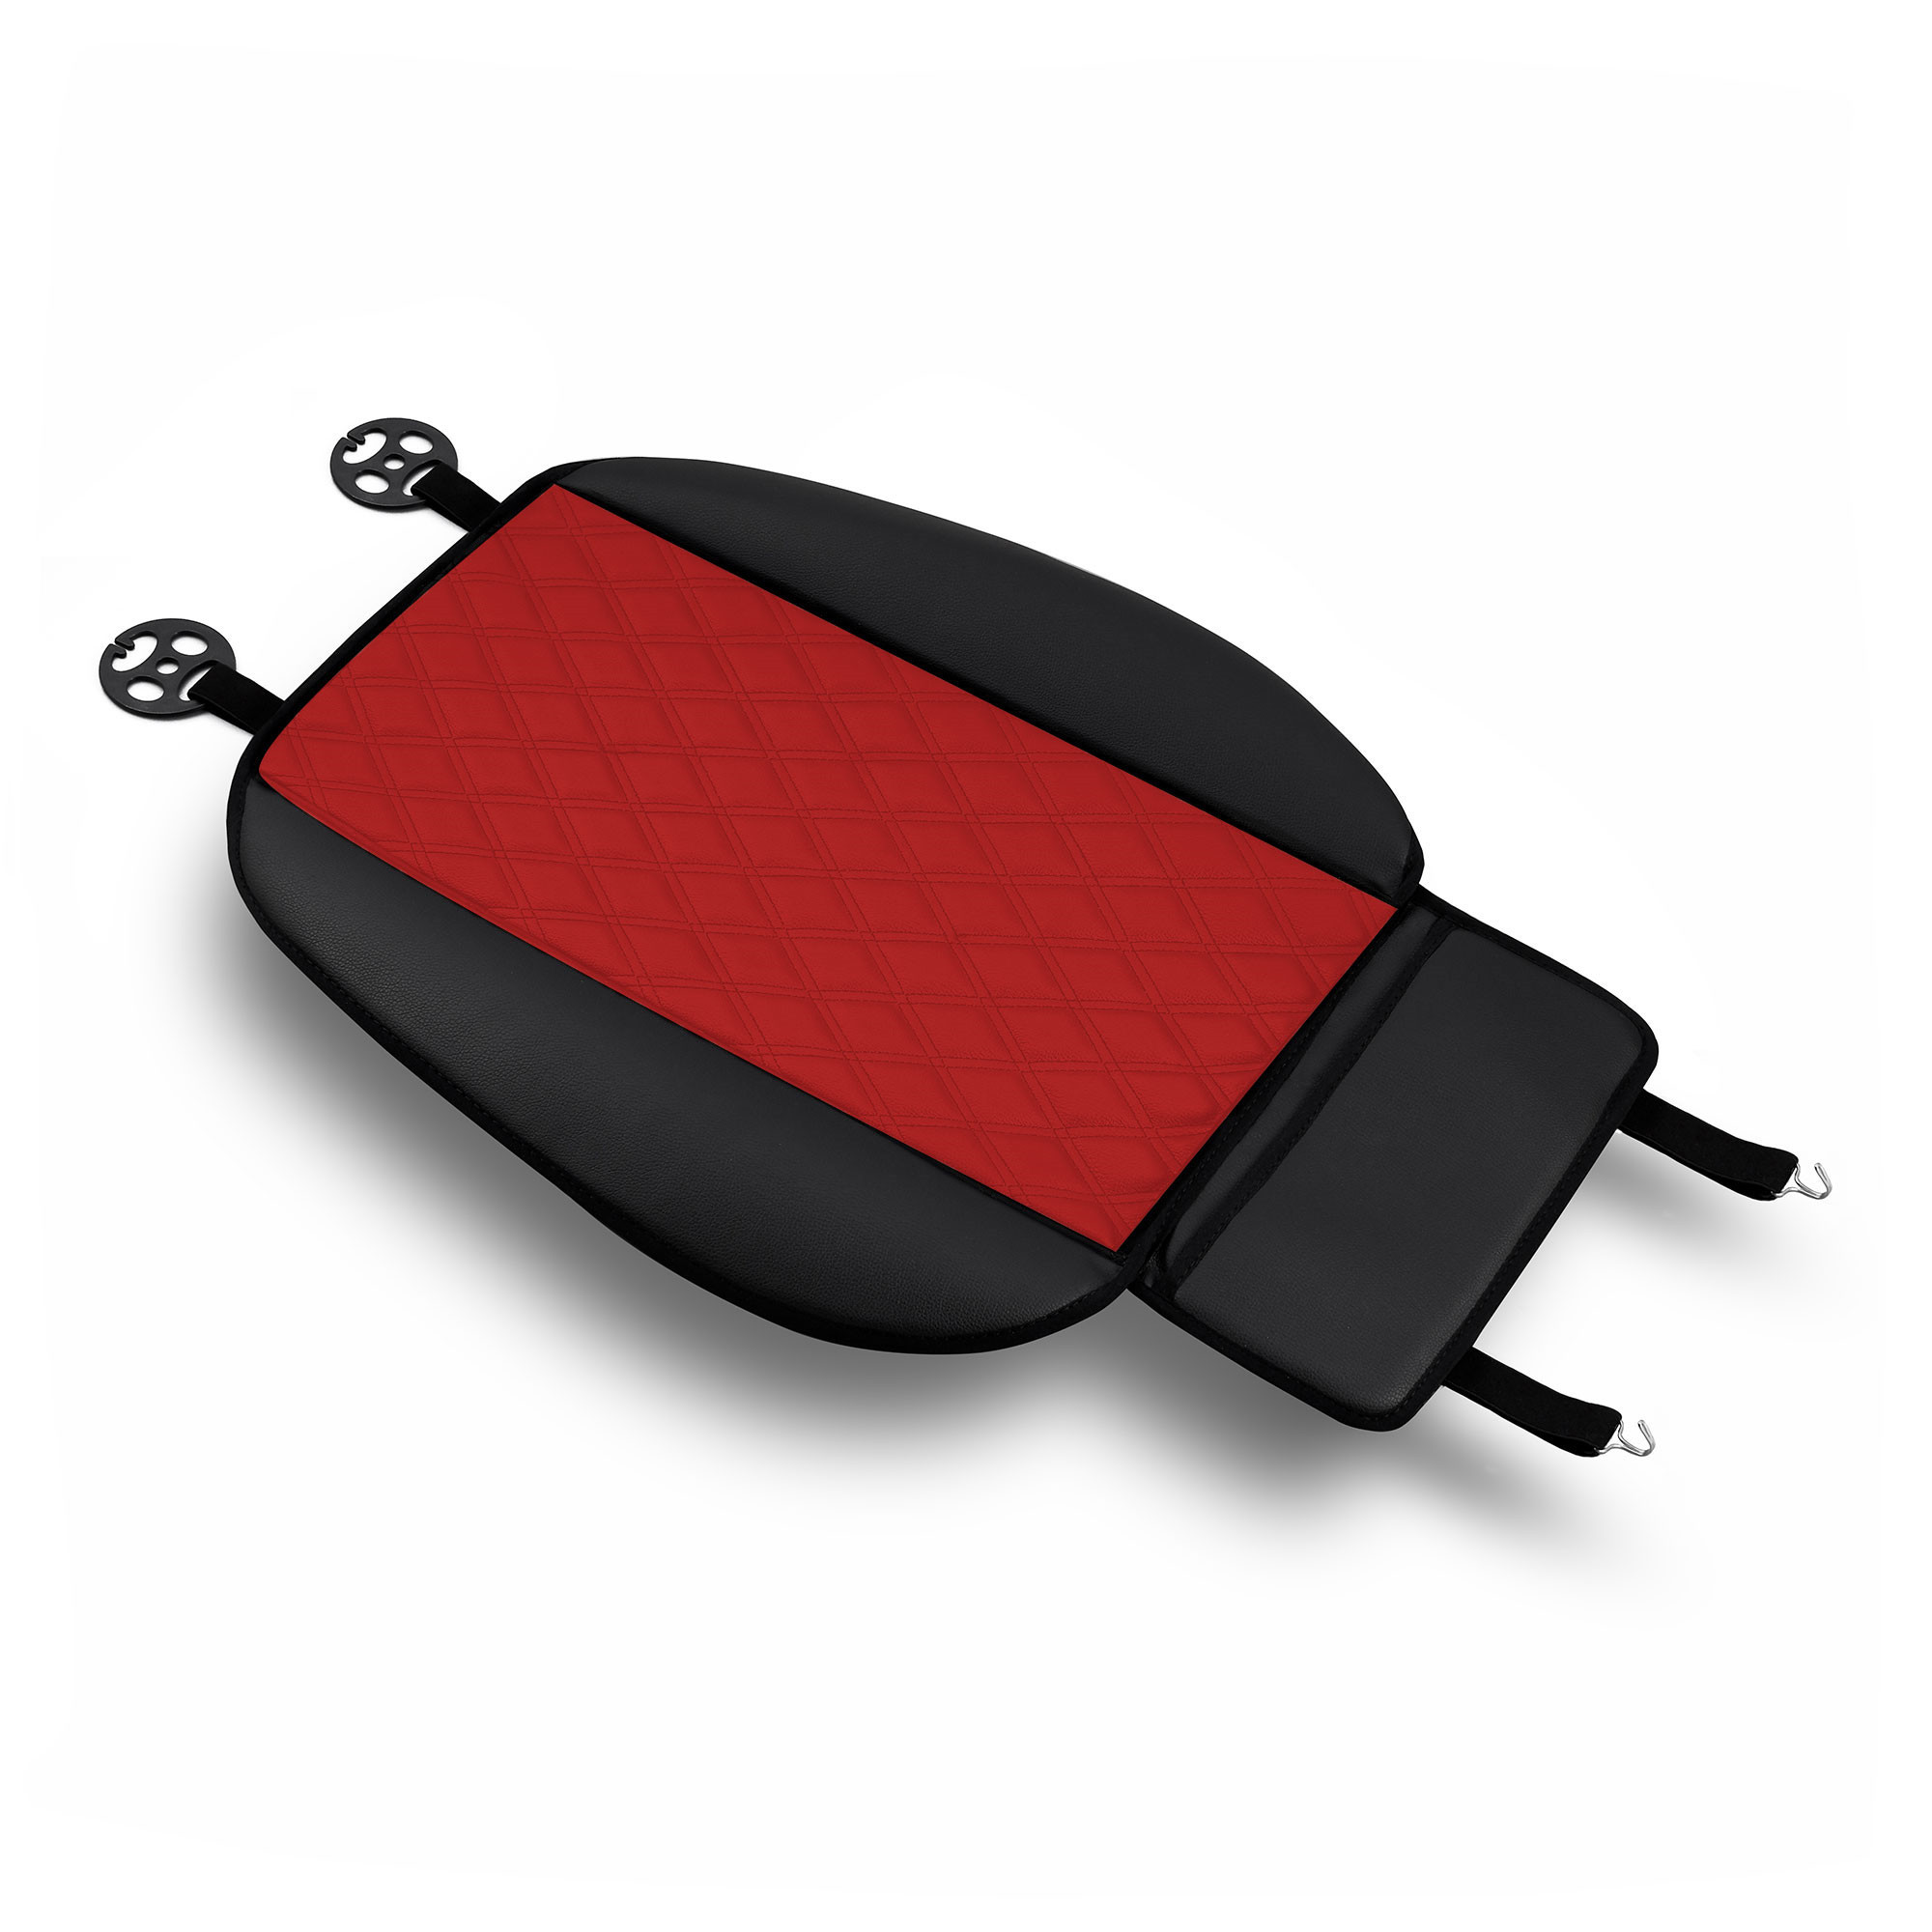 PU211102 seat cushion